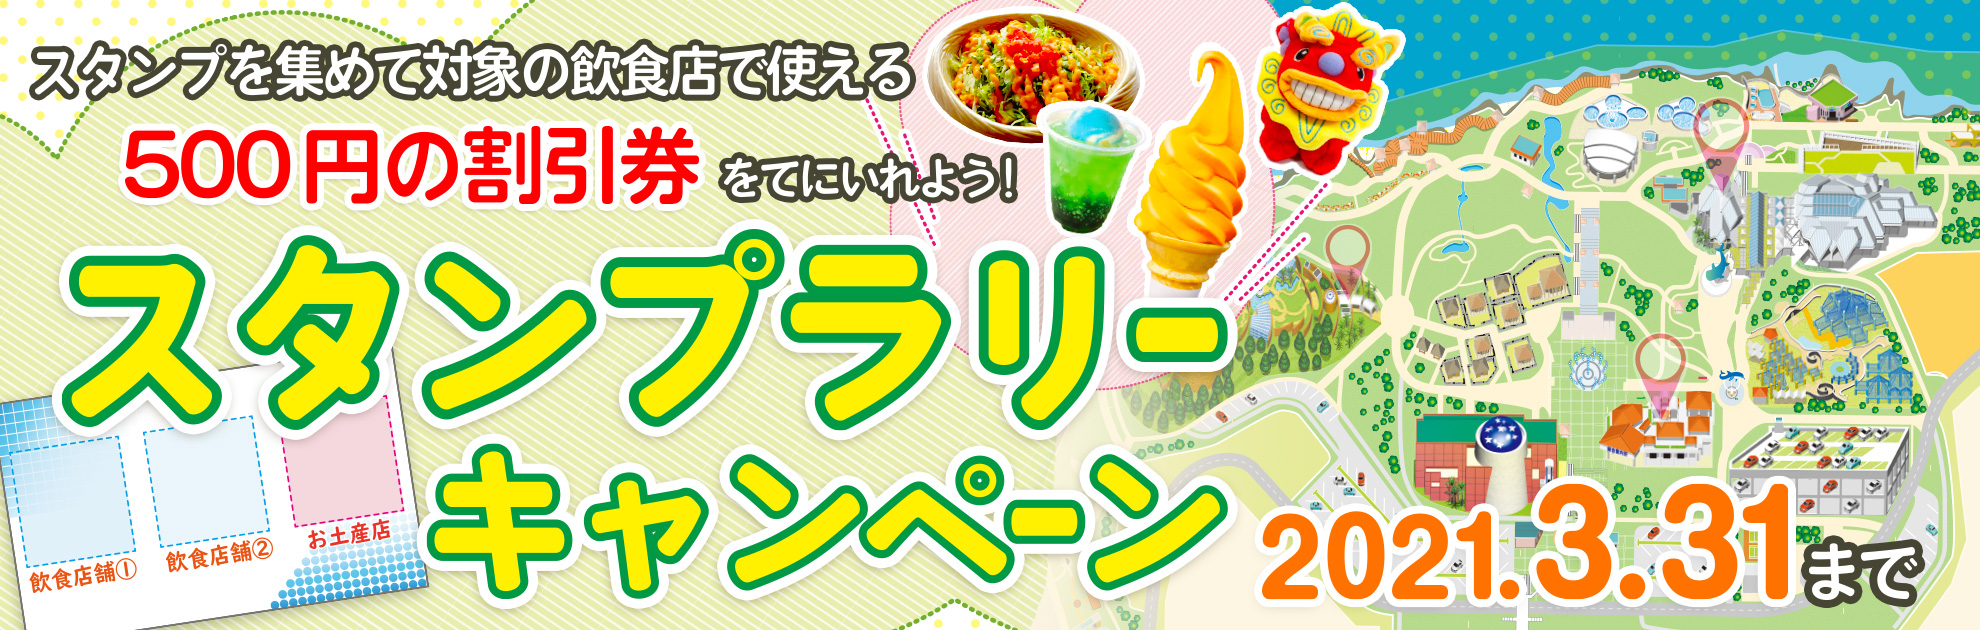 Let's obtain discount coupon of 500 yen to collect ... stamps during stamp rally campaign conduct, and to be usable in target restaurant